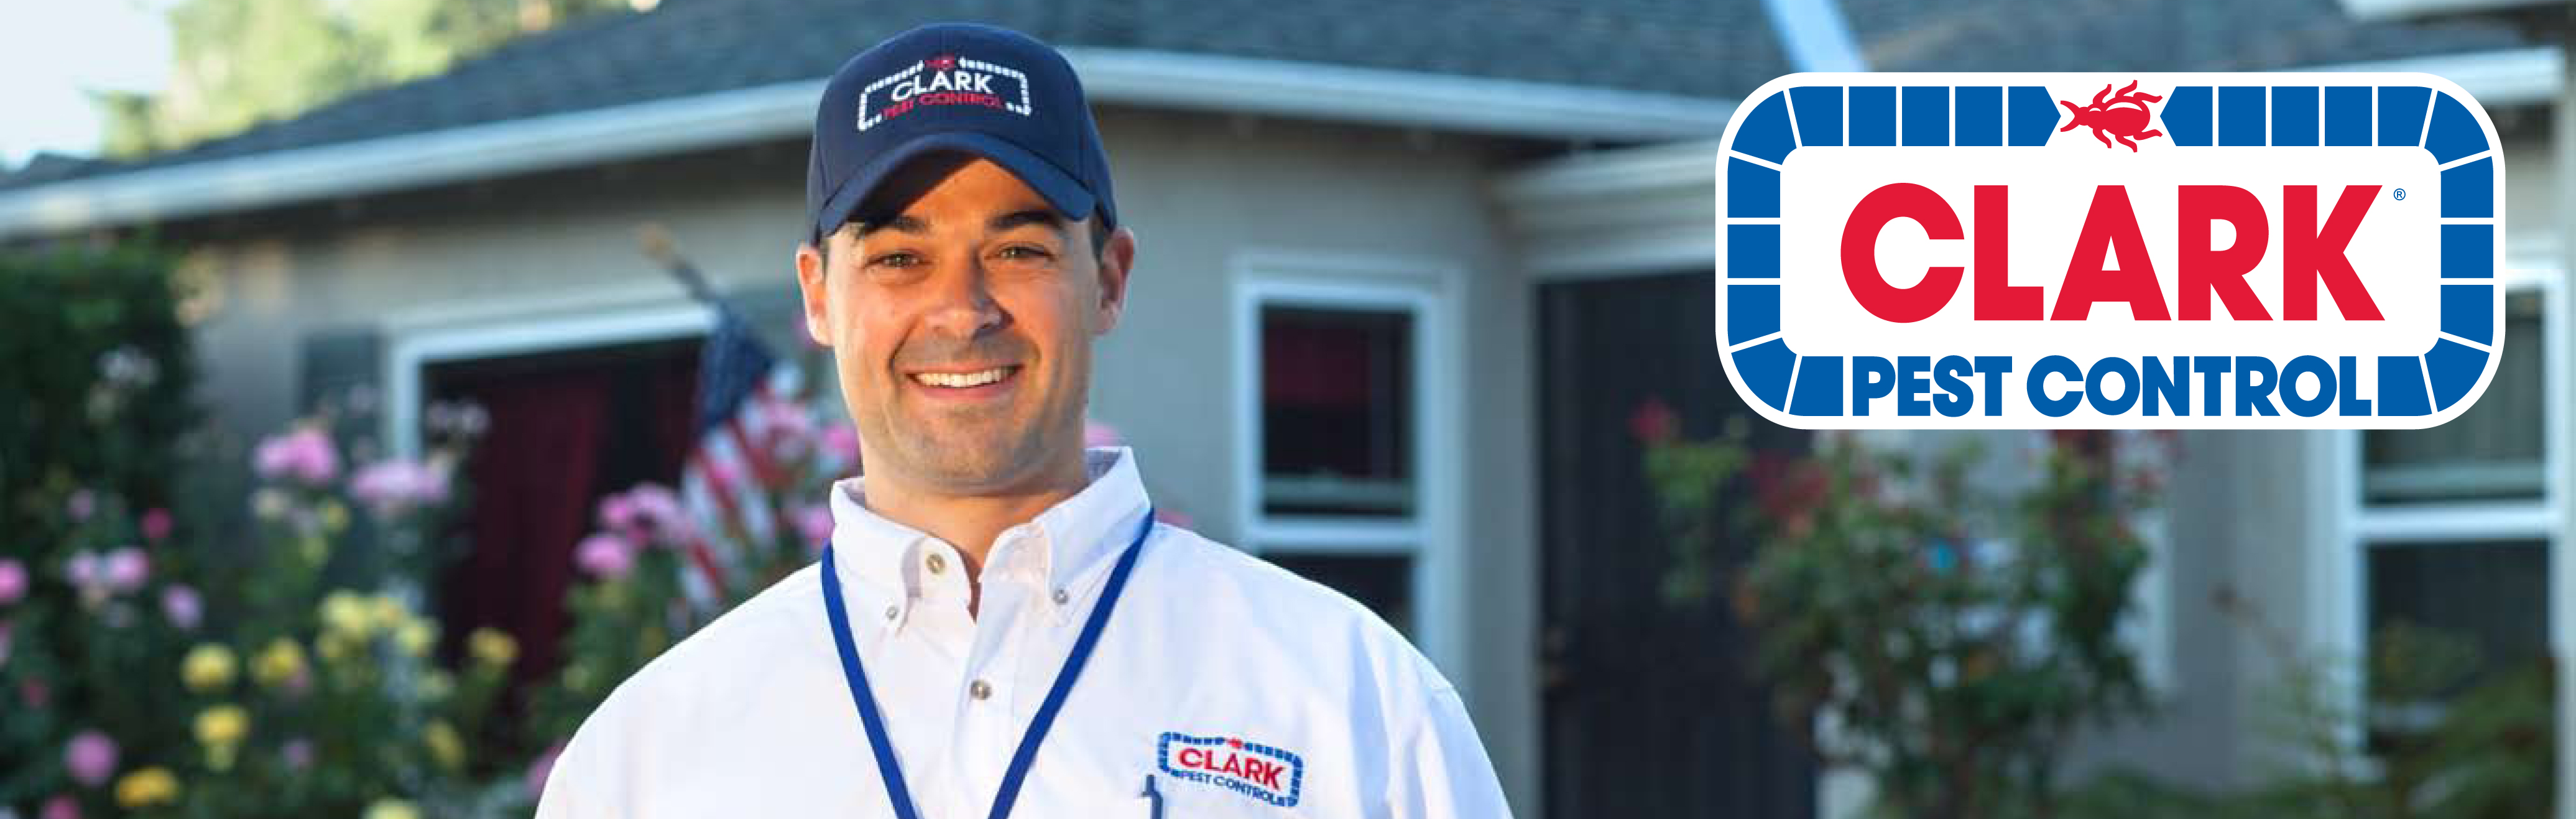 Clark Pest Control reviews | Home & Garden at 11285 White Rock Road - Rancho Cordova CA